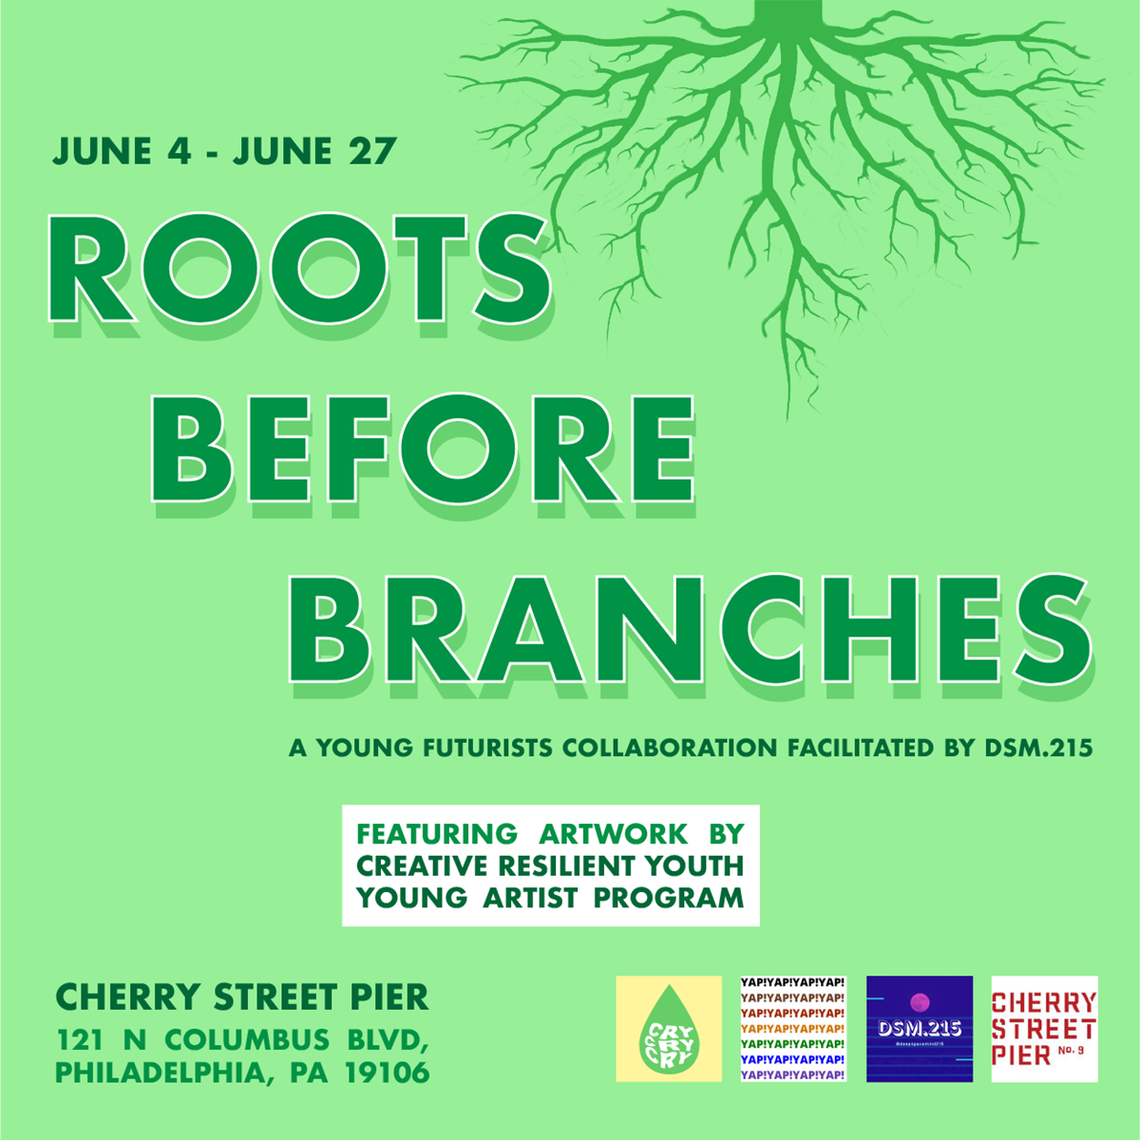 rootsbeforebranches 1200x1200